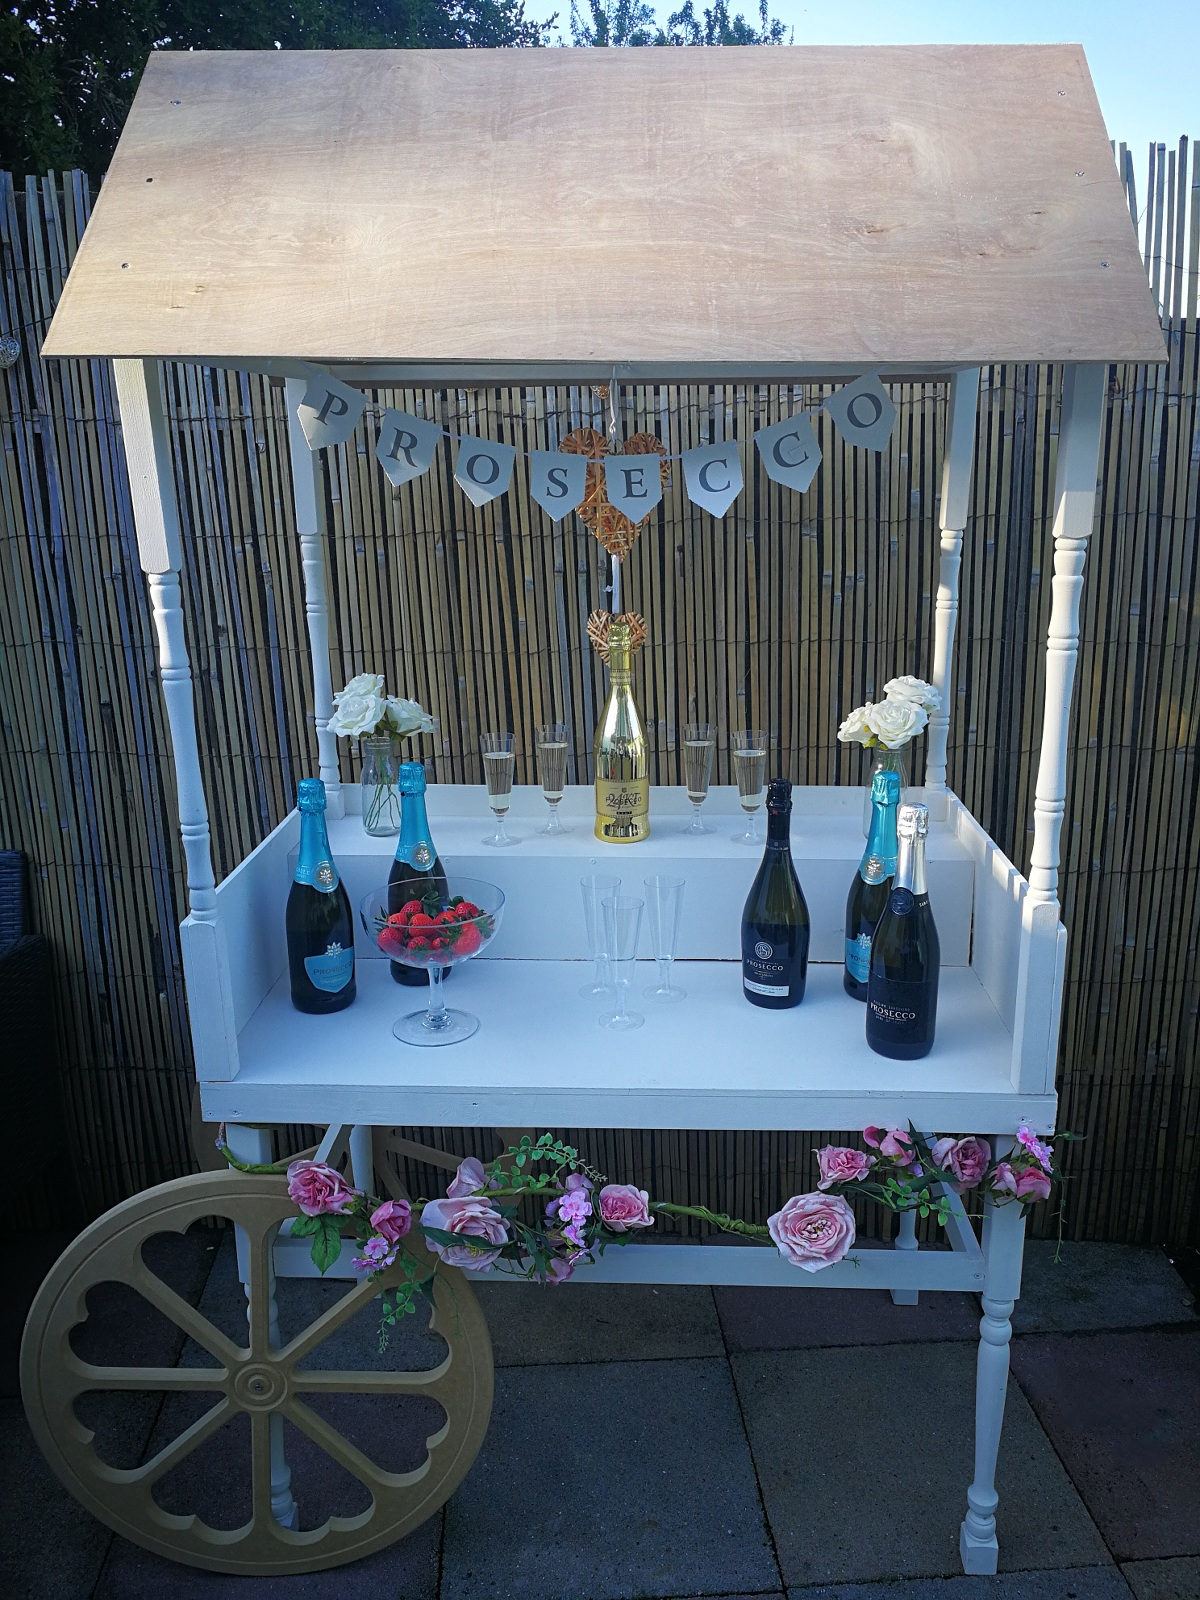 sweet/prosecco cart